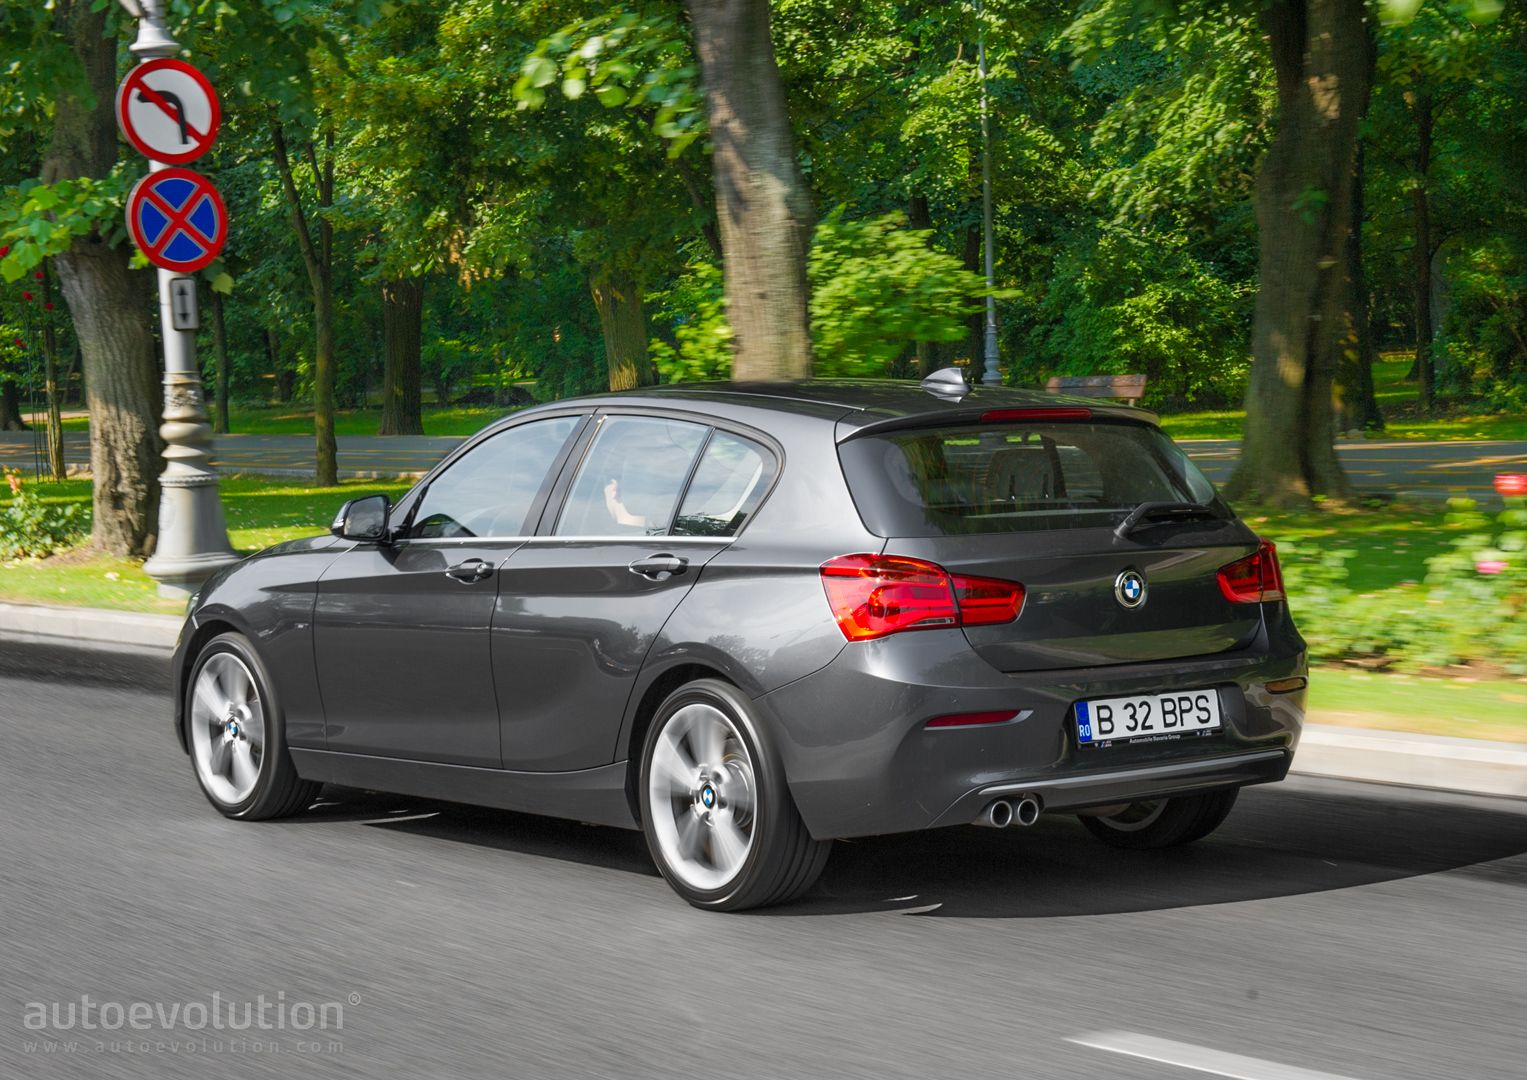 2015 Bmw 1 Series Facelift Review Autoevolution